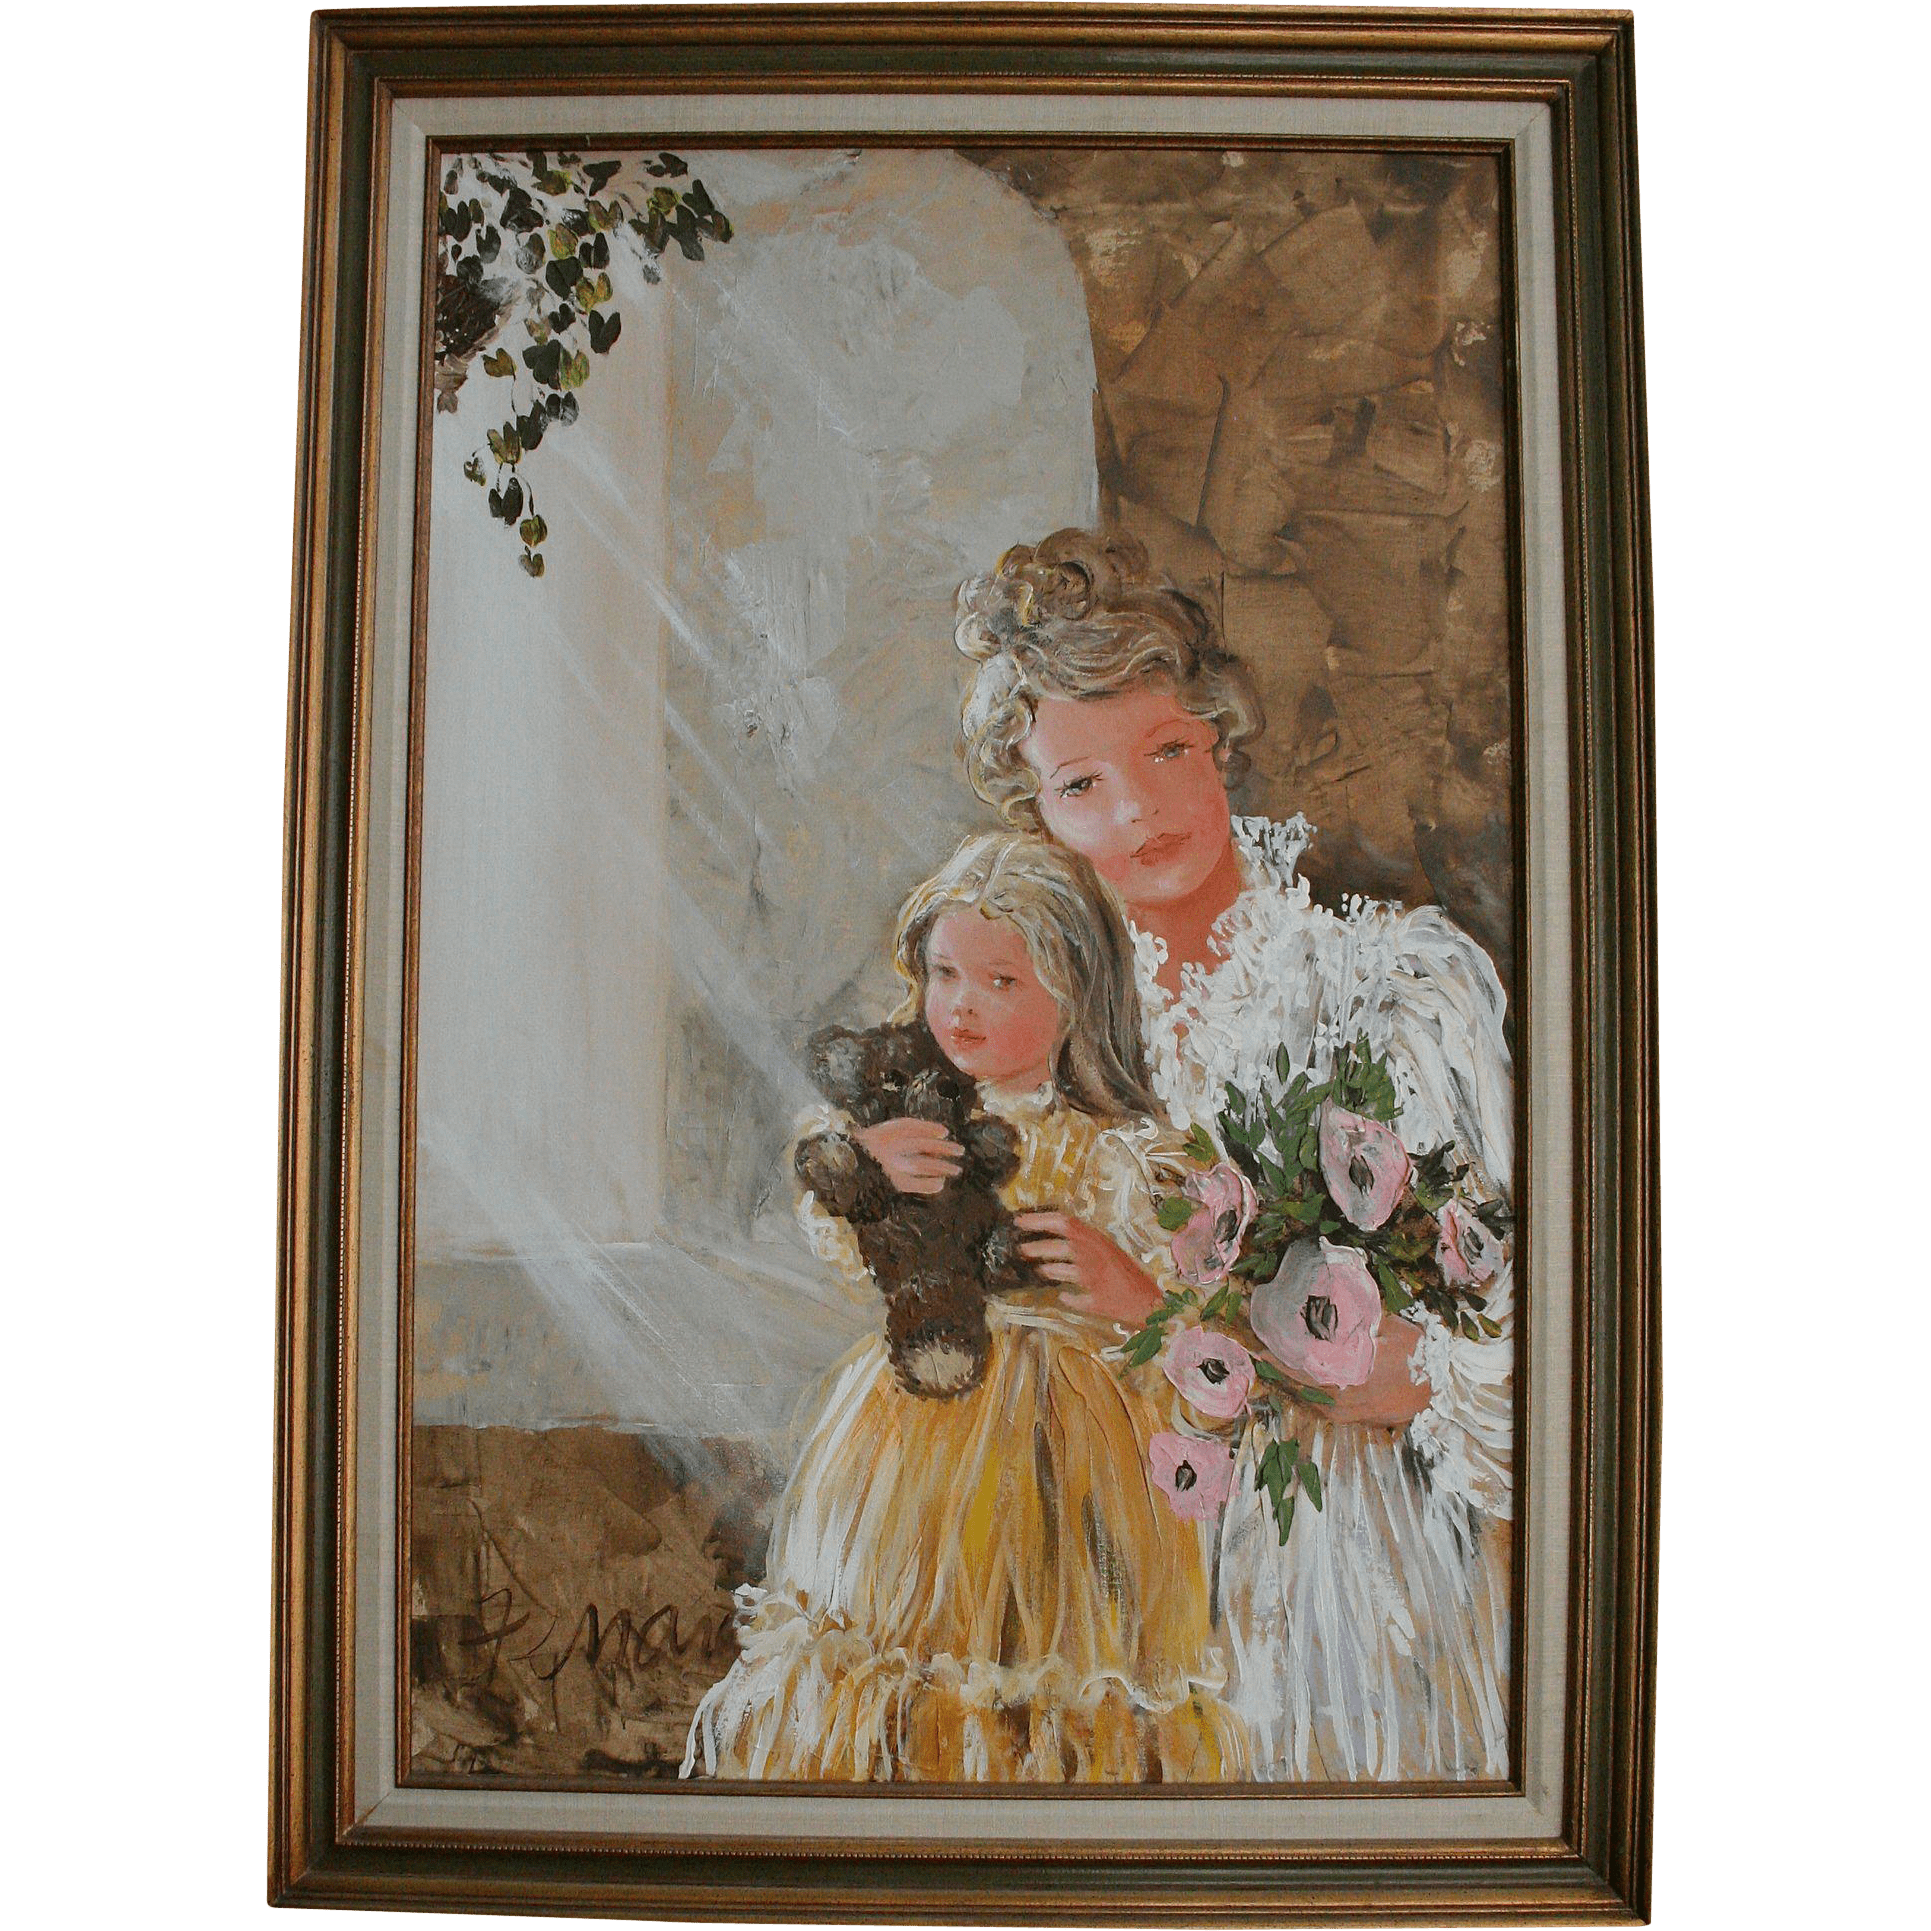 Large Mother Daughter Amp Teddy Bear Doll Mid Century Oil Painting From Randomharvest On Ruby Lane